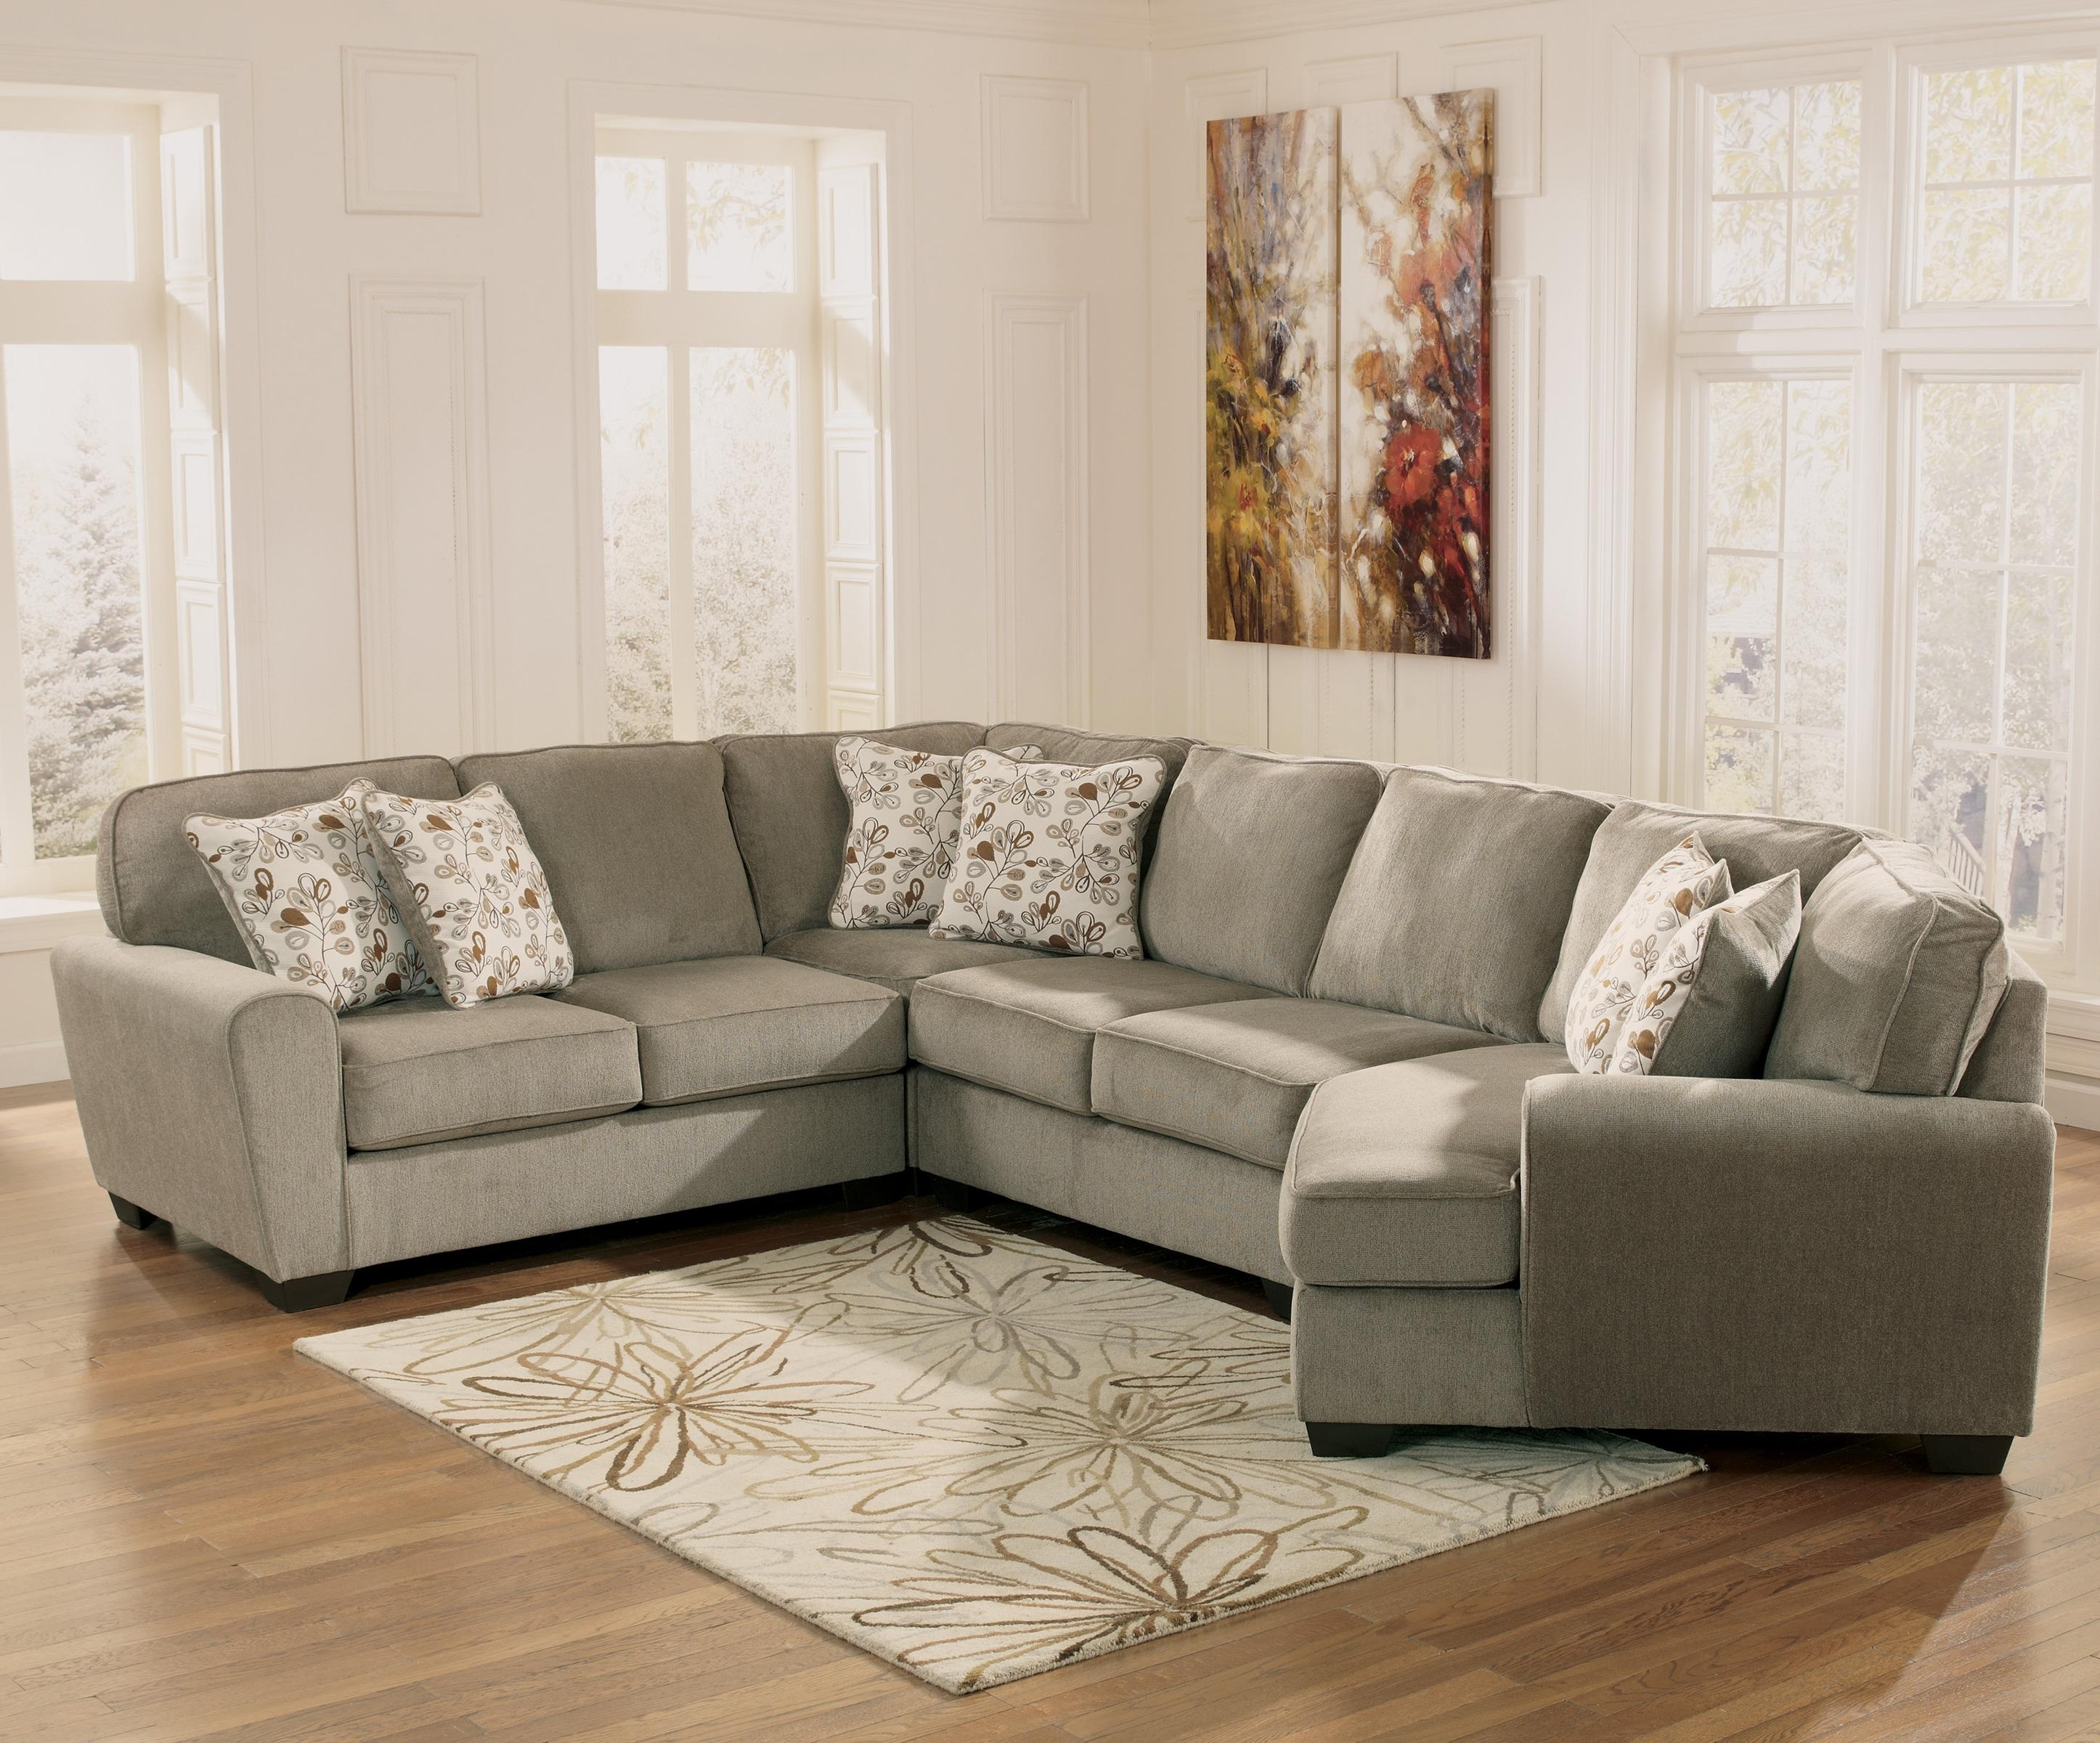 Ashley Furniture Patola Park – Patina 4 Piece Small Sectional With With Regard To Green Bay Wi Sectional Sofas (Image 4 of 10)